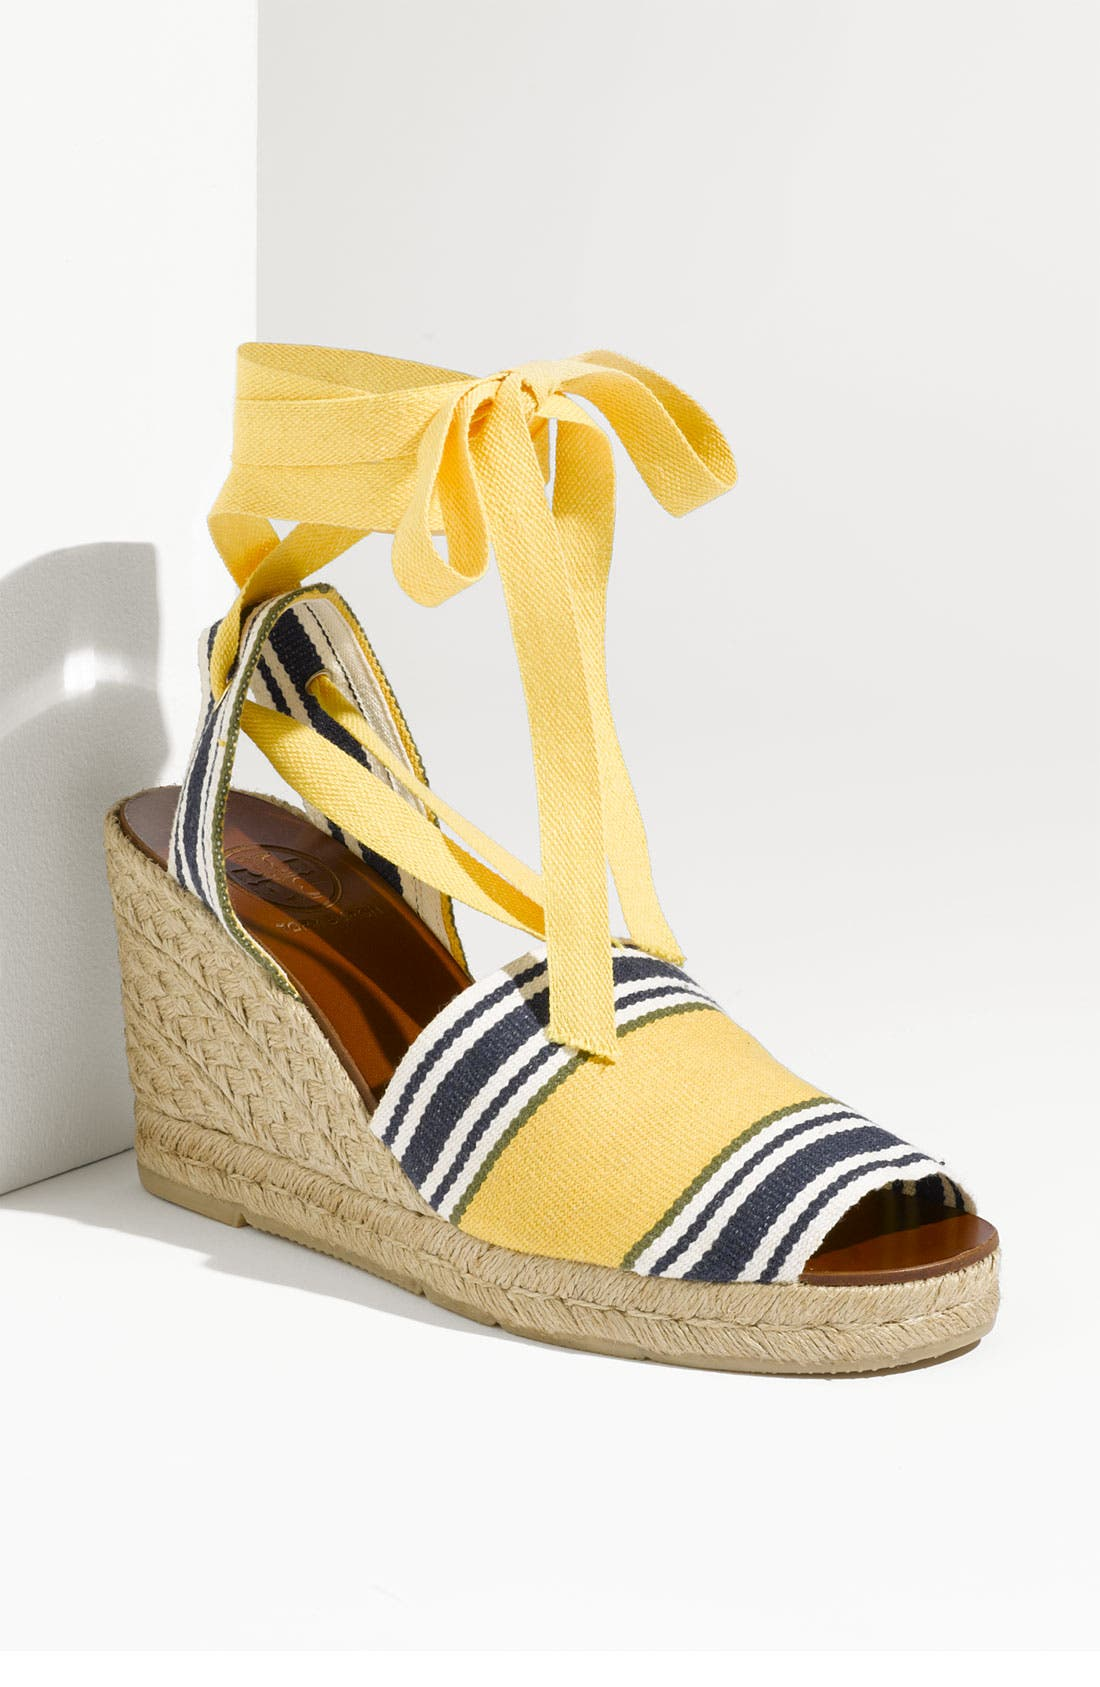 Alternate Image 1 Selected - Tory Burch 'Marabelle' Wedge Pump